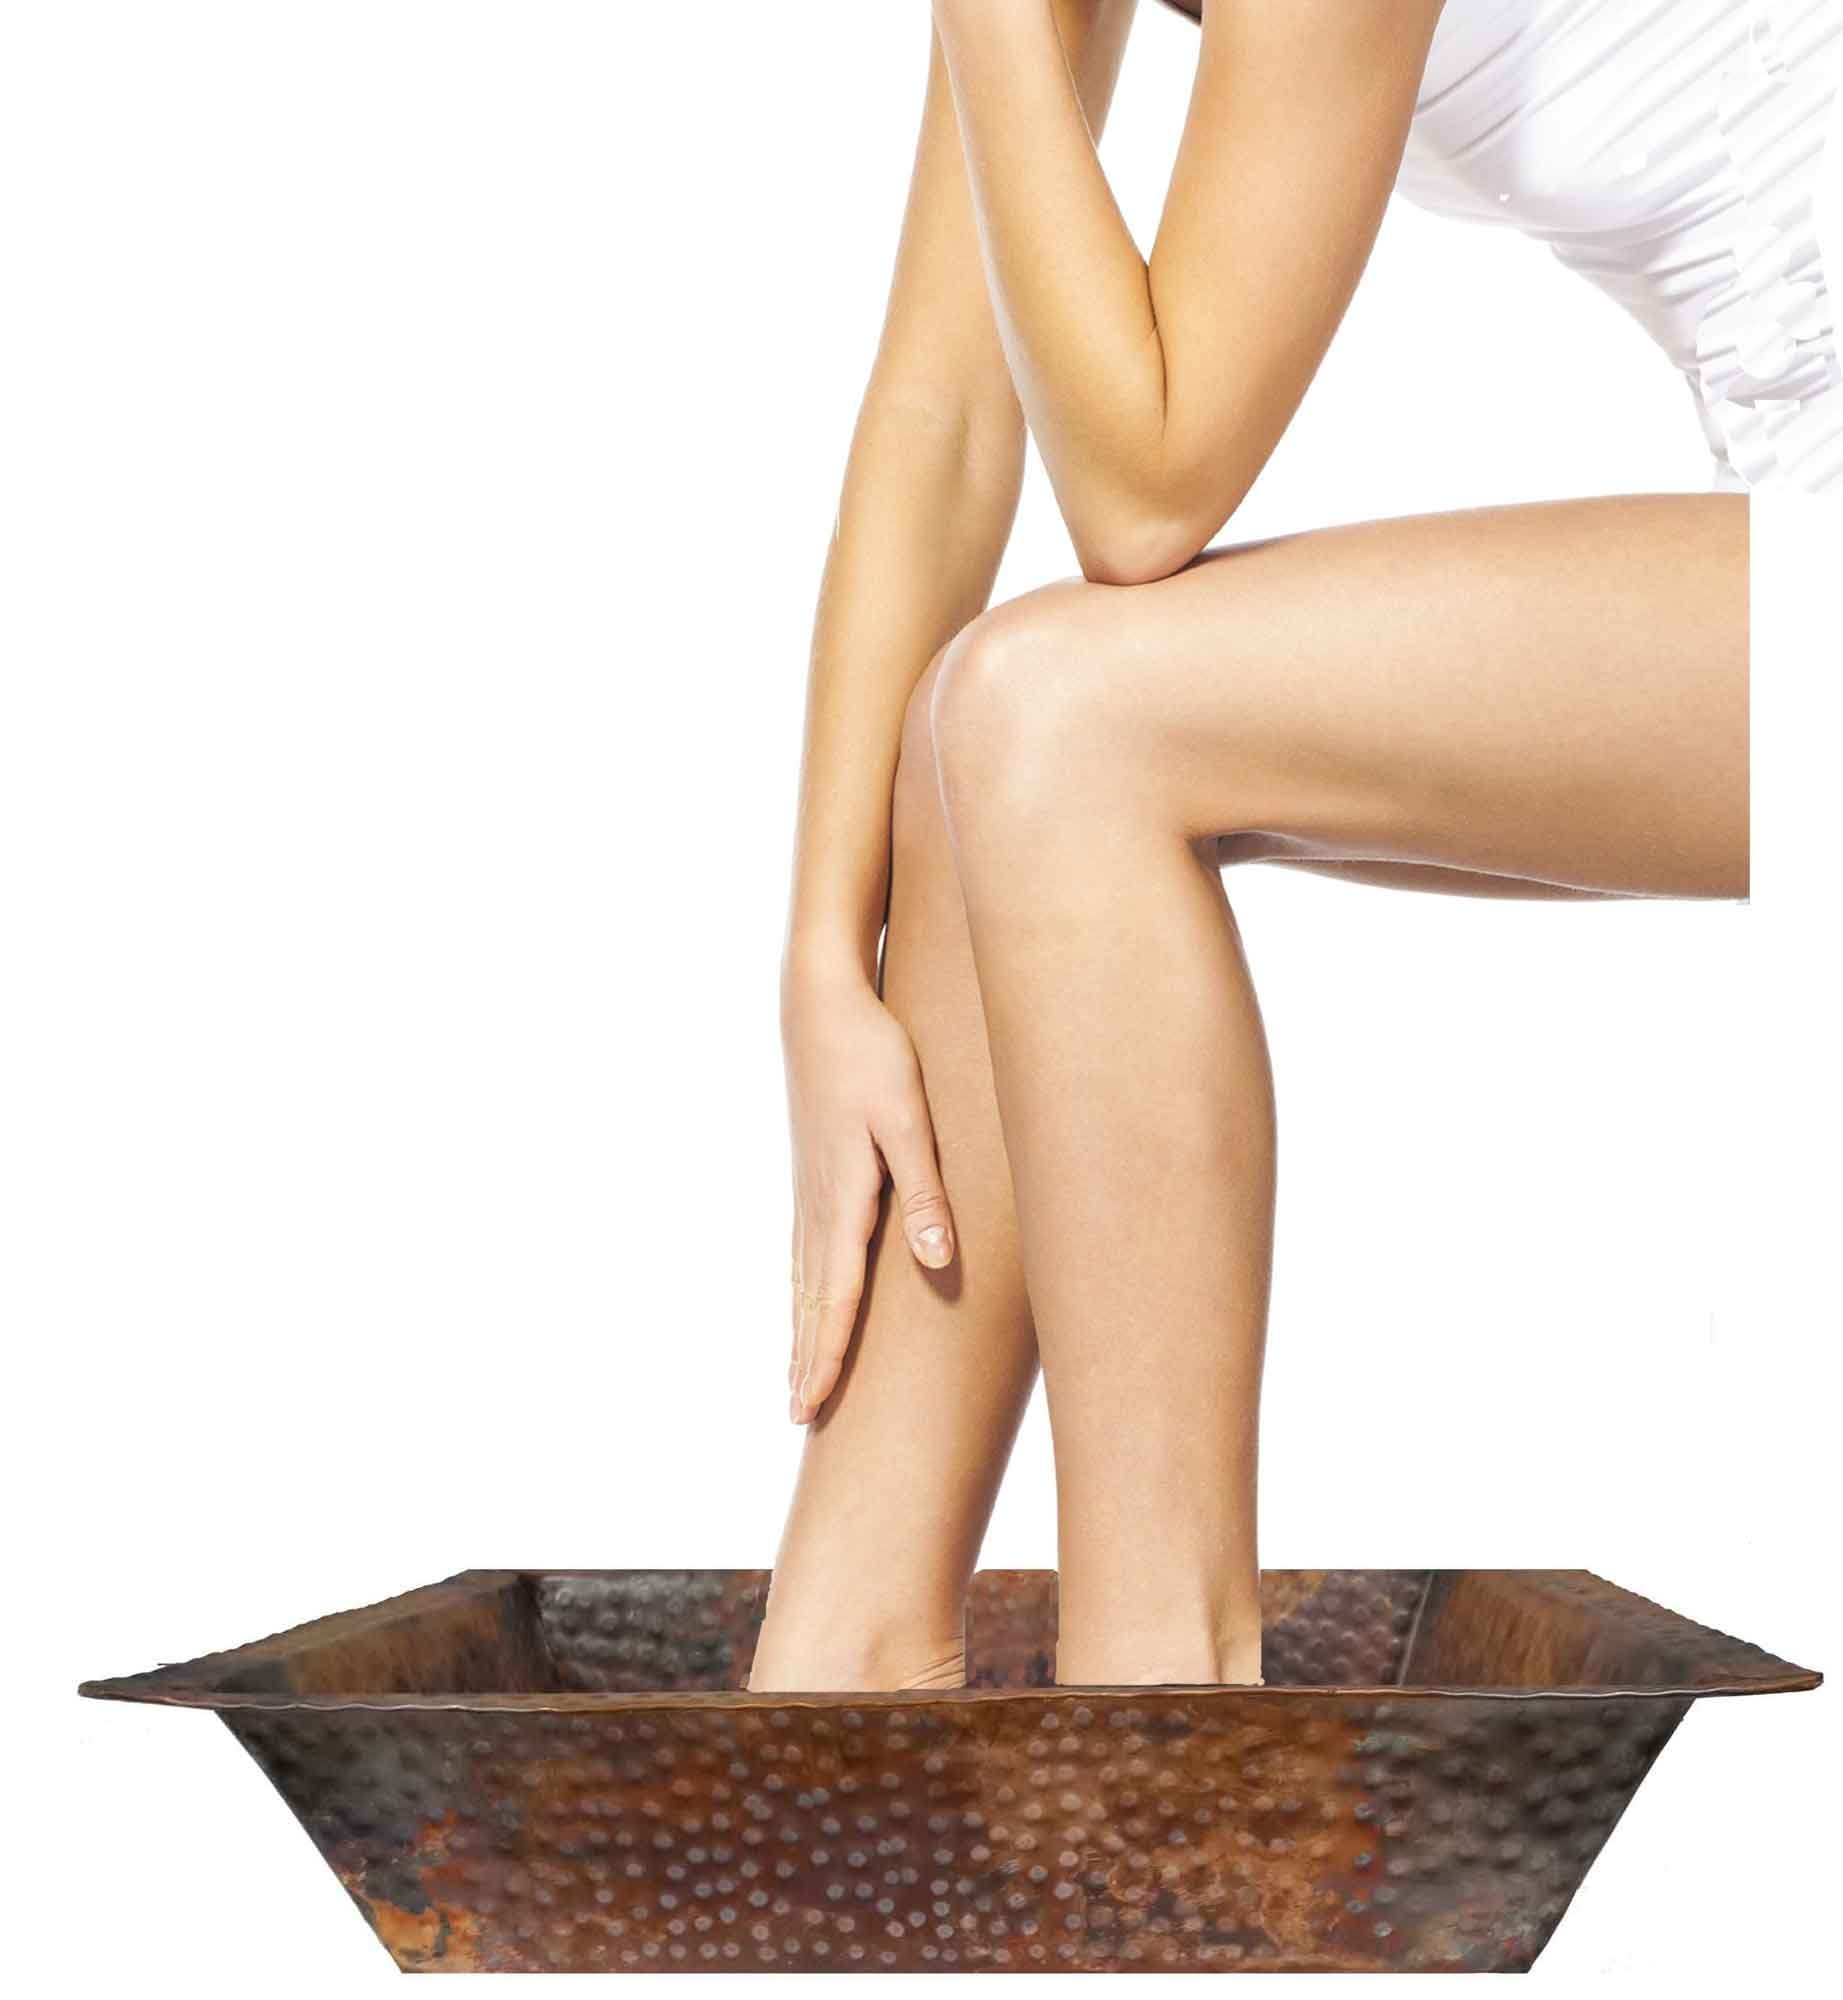 Shallow Rectangle Fire Burnt Foot Wash Soaking Massage Spa Pedicure Flat Lip Bowl by Egypt gift shops by Egypt Gift Shops